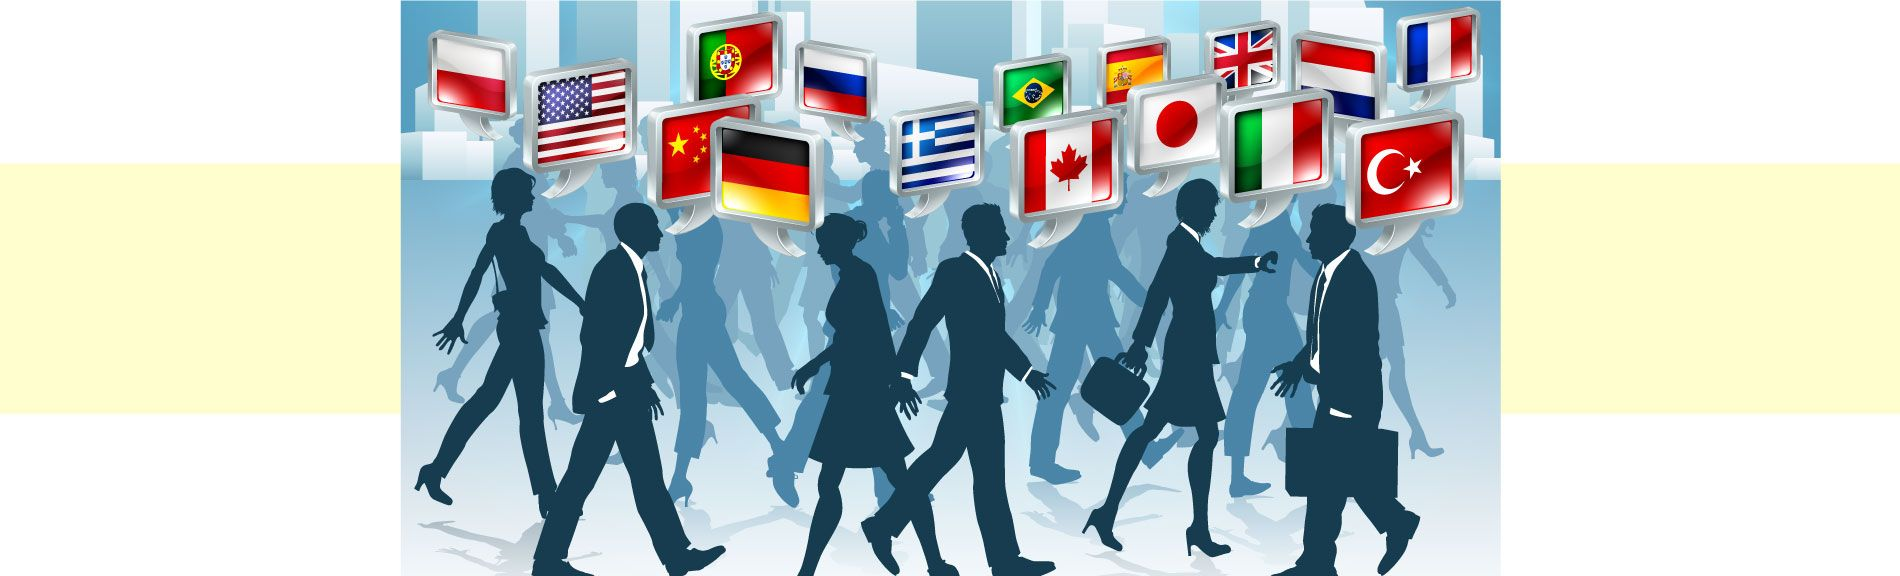 Business People With Flags Of Many Countries